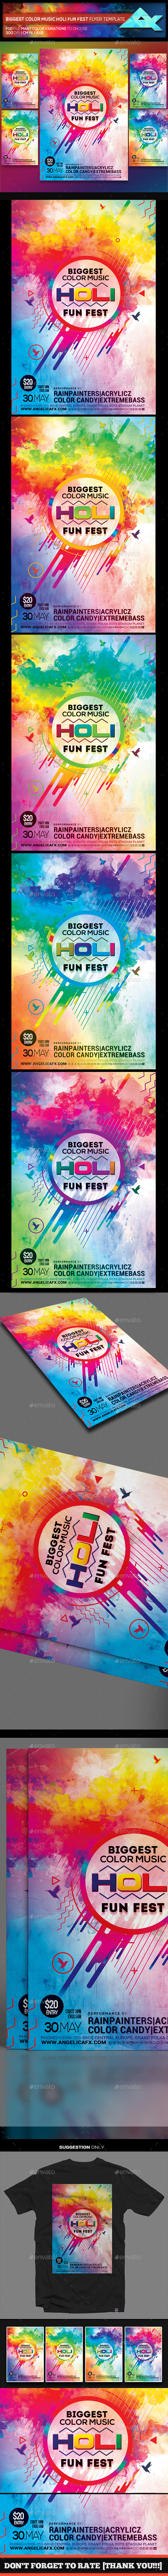 Biggest Color Music HOLI Fun Fest Flyer Template - Flyers Print Templates